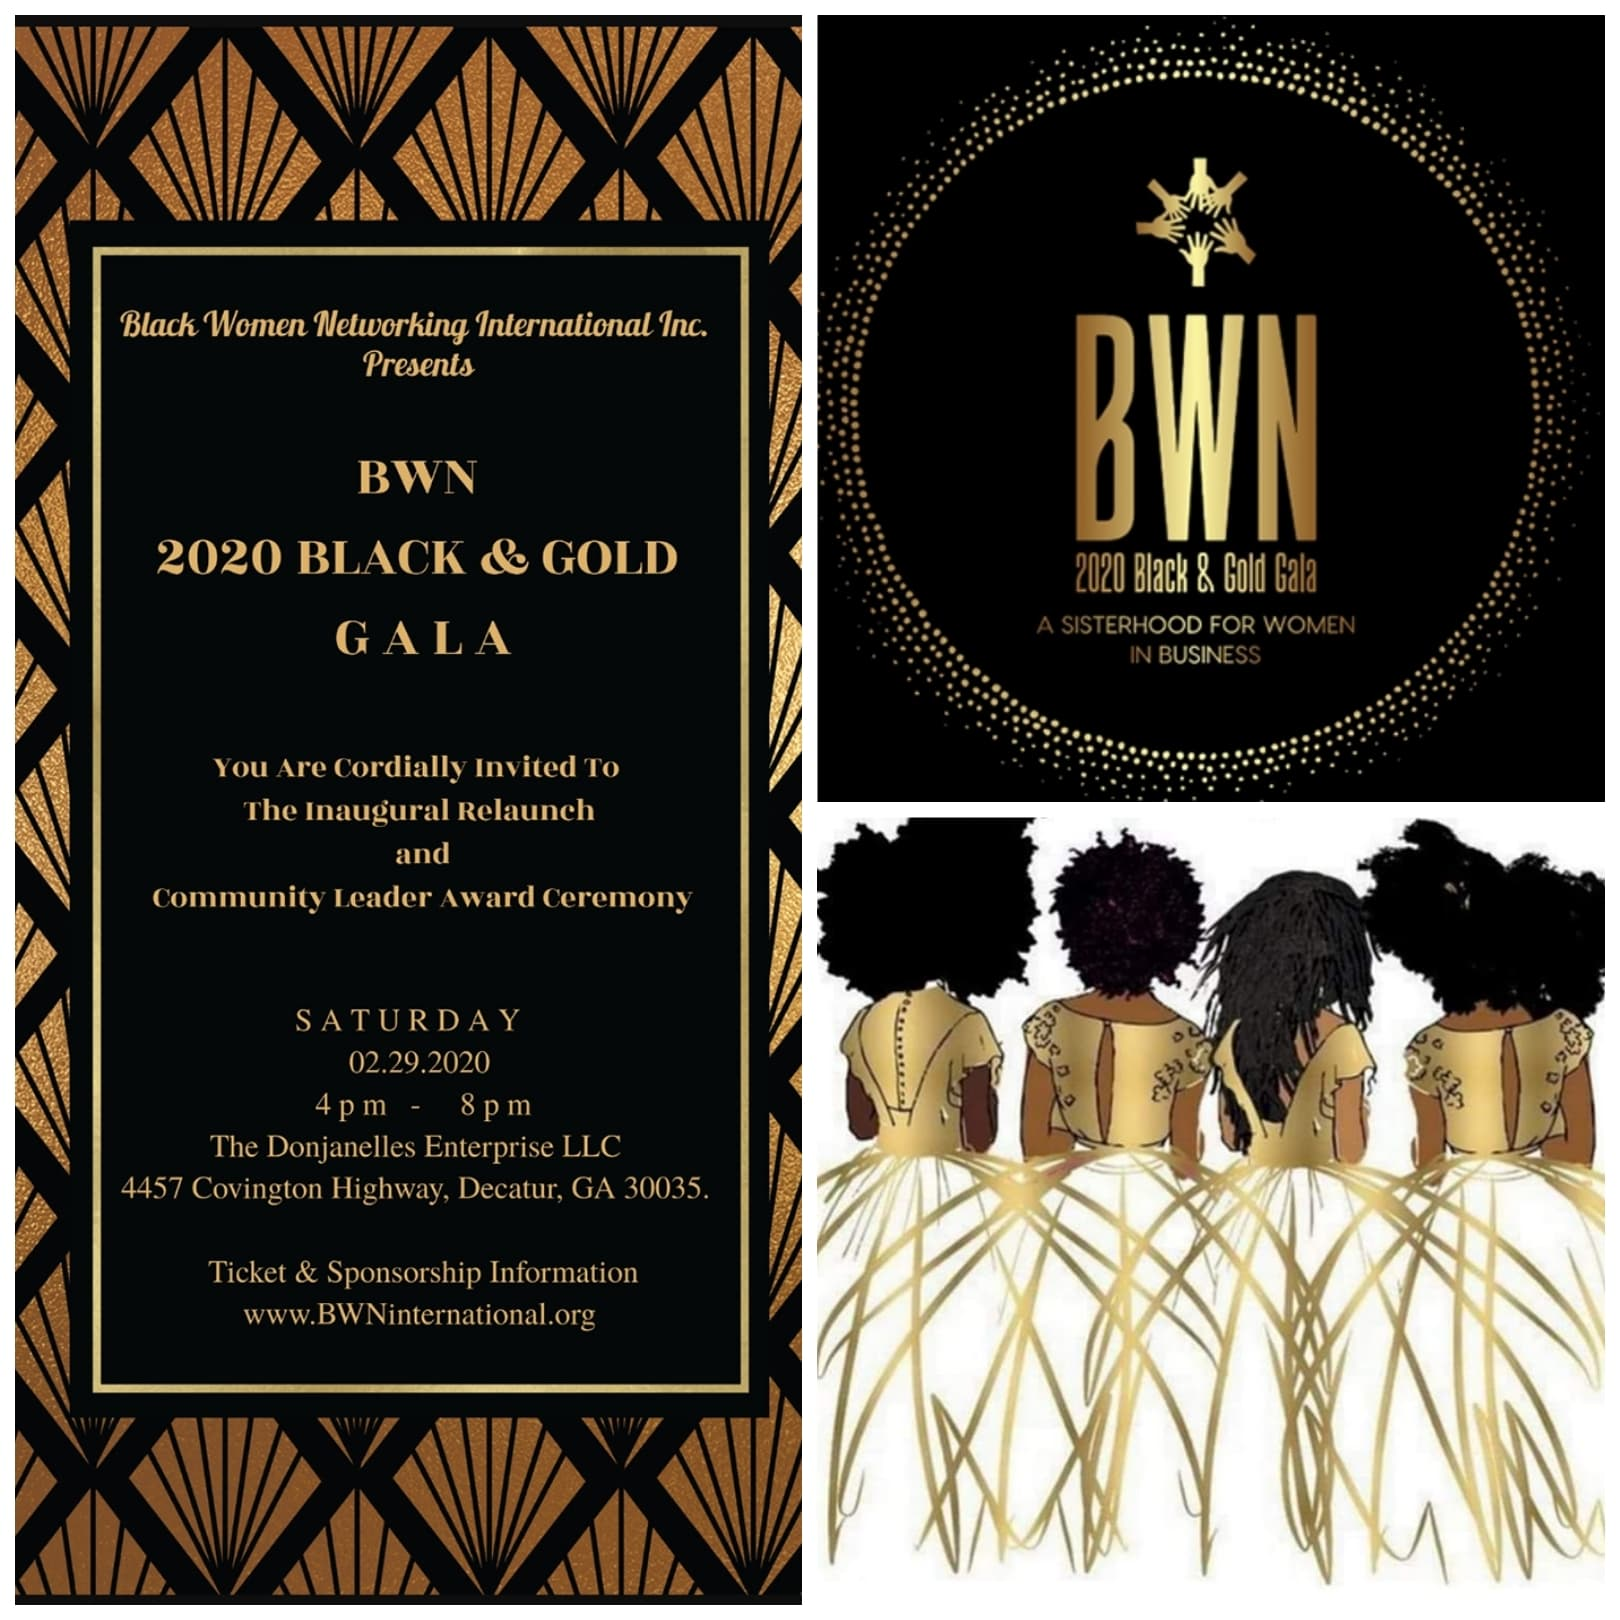 BWN 2020 Black & Gold Gala - Sponsorship Packages